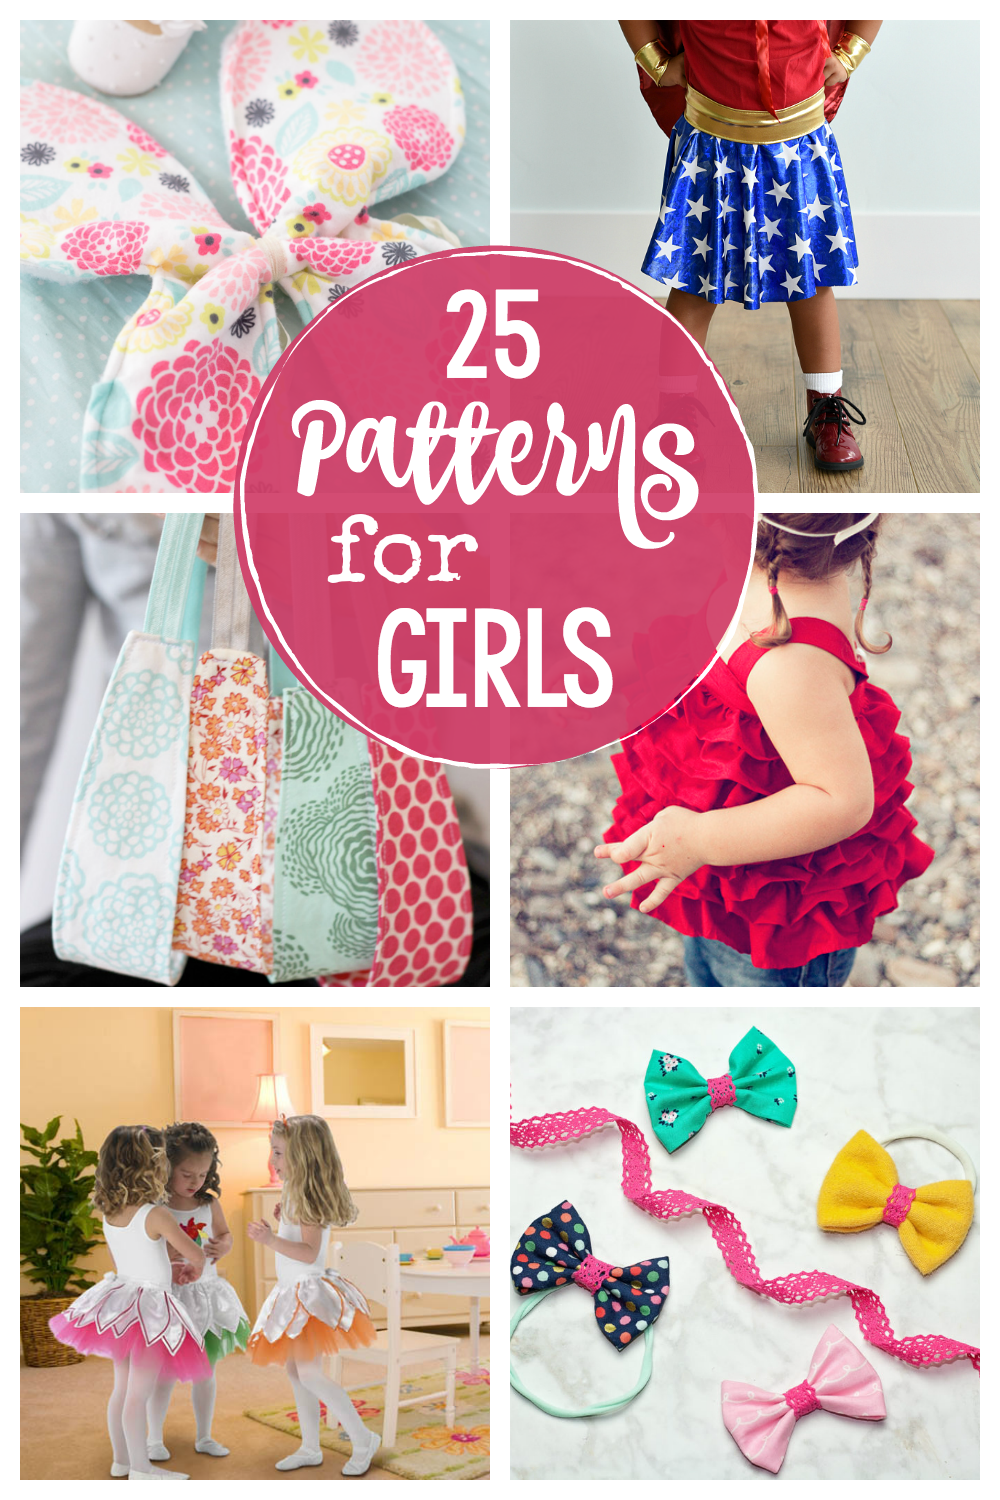 25 Patterns for Girls-Cute things to sew for little girls from dresses to toys and bags and accessories and more. So many fun patterns for girls. #sew #patterns #crafts